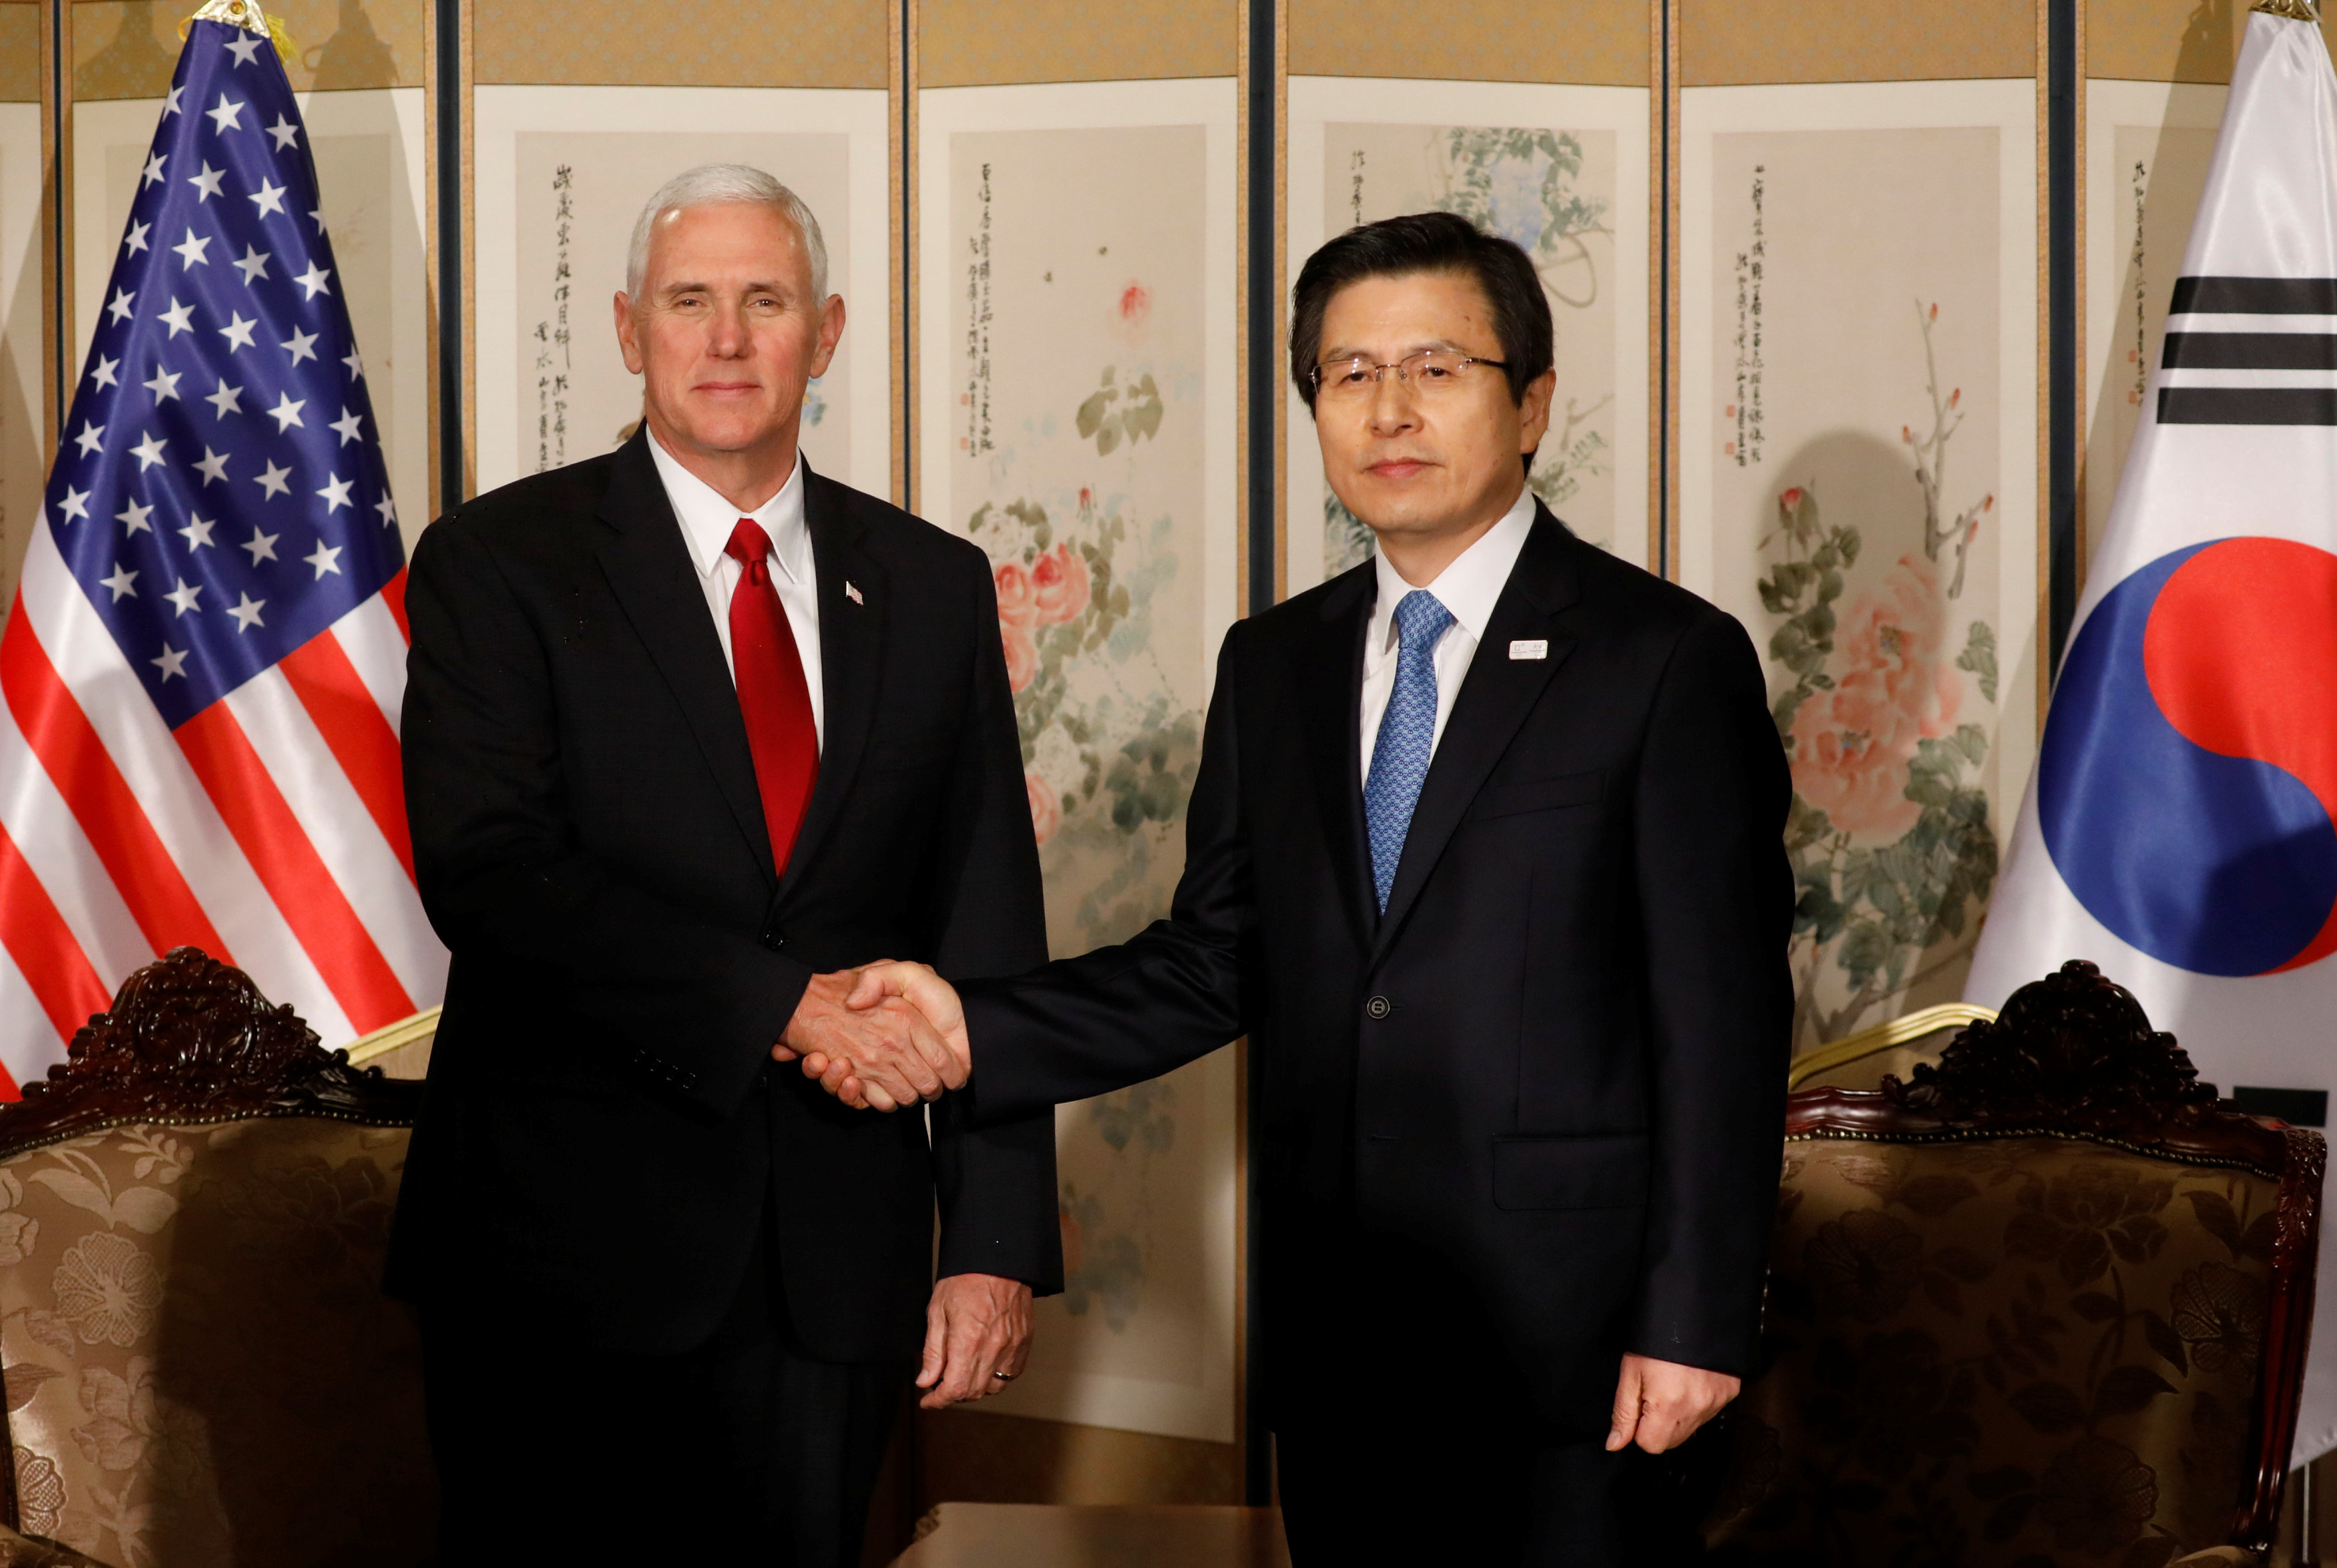 U.S. Vice President Mike Pence shakes hands with acting South Korean President and Prime Minister Hwang Kyo-ahn during their meeting in Seoul, South Korea on April 17, 2017. (REUTERS/Kim Hong-Ji)